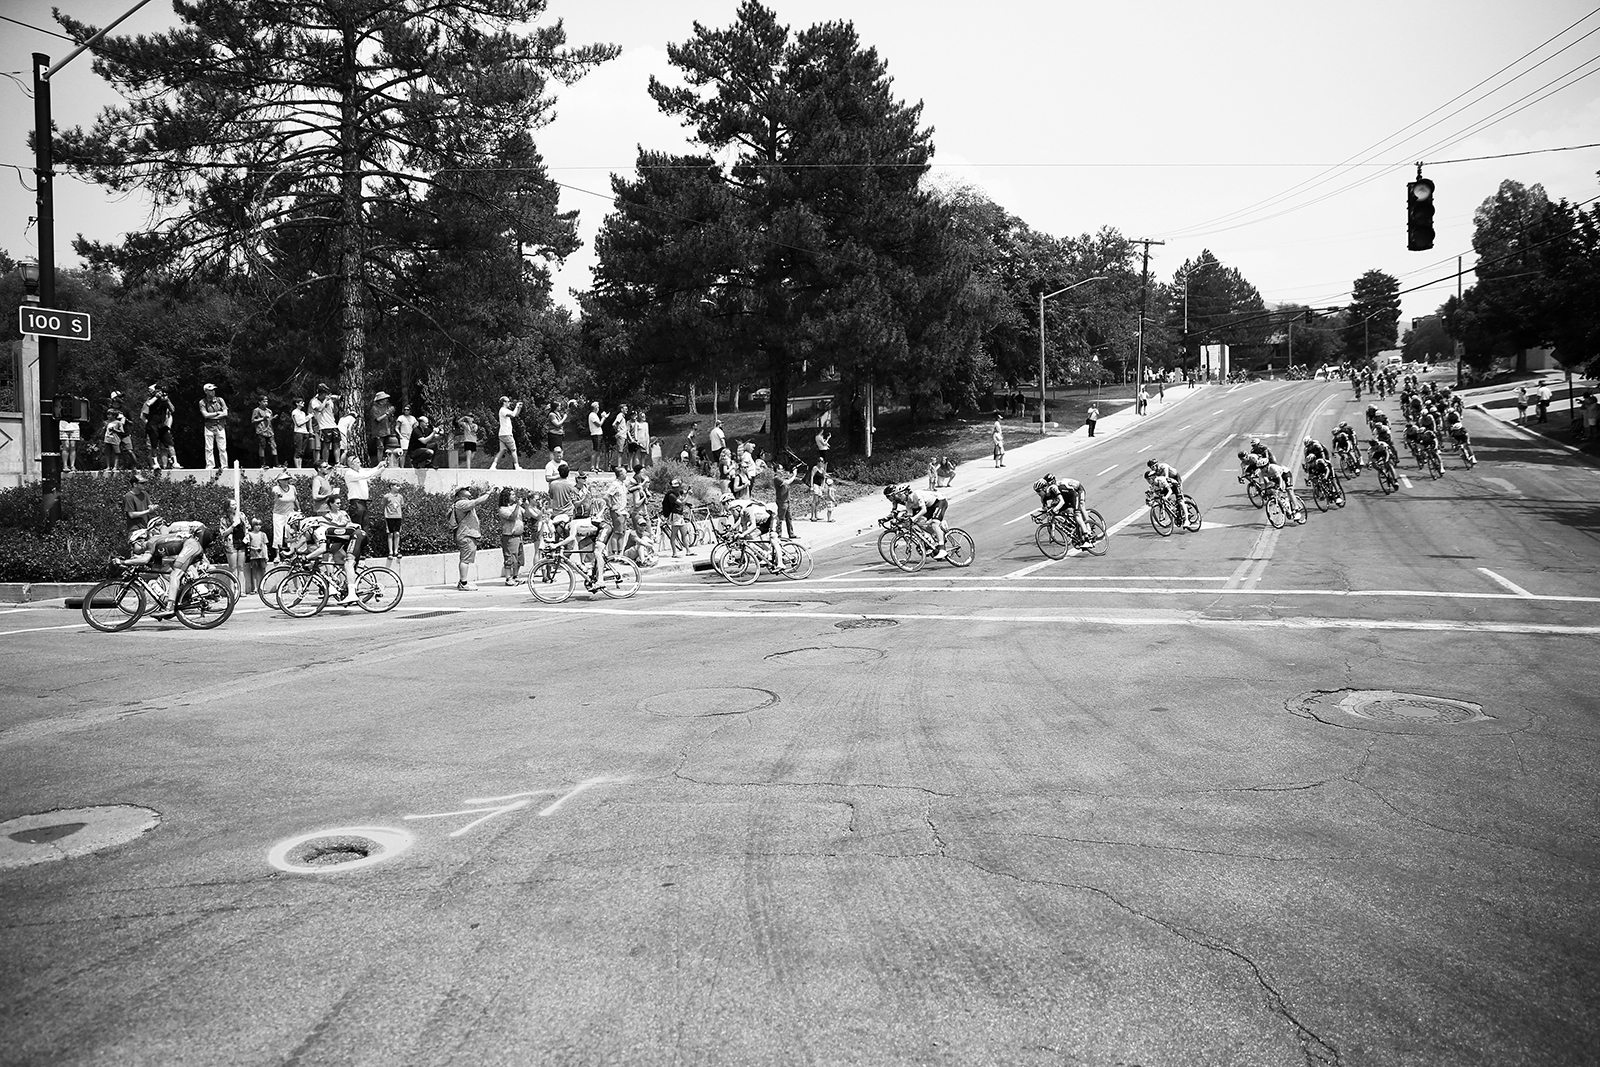 The peloton went through thie corner of Reservoir Park at high speed.  2018 Tour of Utah Stage 4, August 8, 2018, Salt Lake City, Utah. Photo by Cathy Fegan-Kim, cottonsoxphotography.net